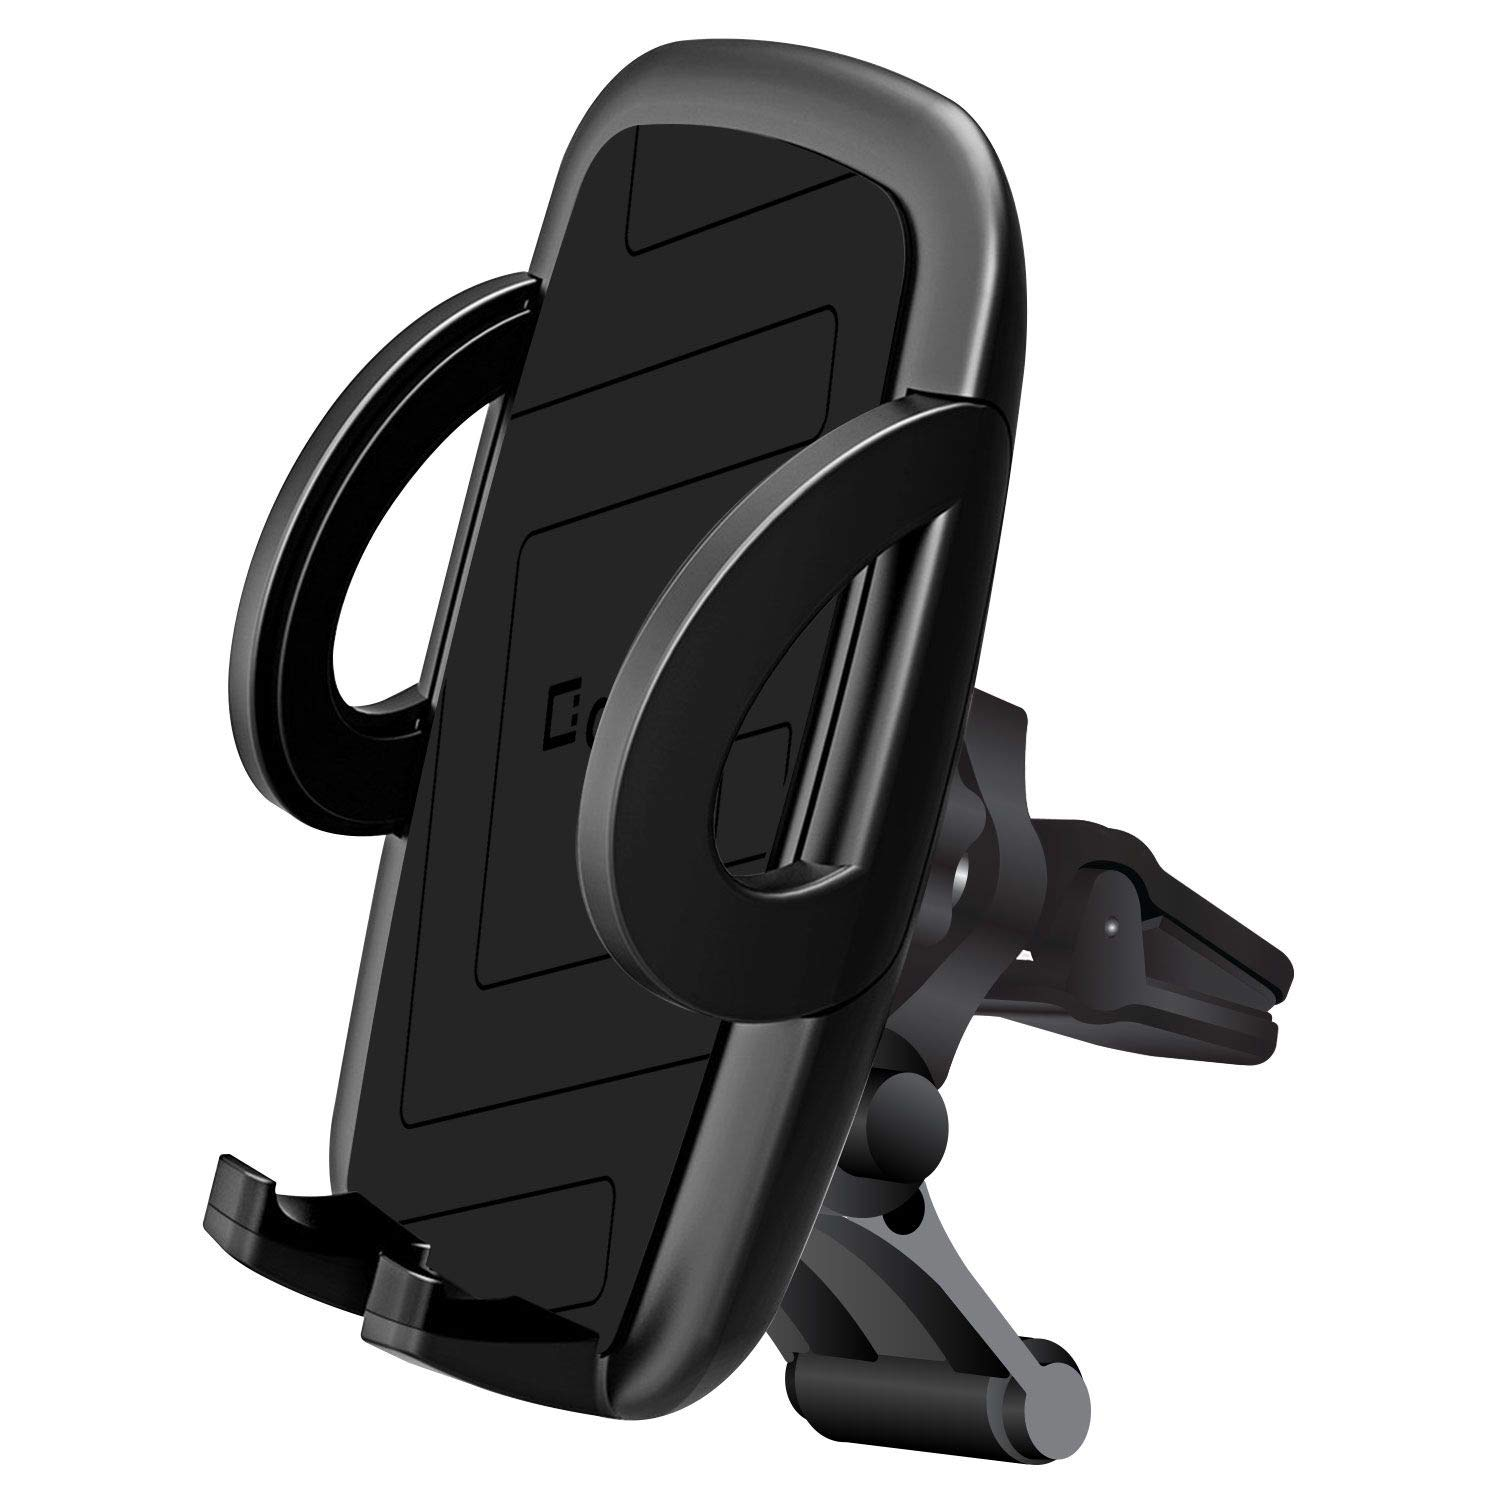 Cellet Smartphone Air Vent Car Mount Phone Holder, Atom Cloth Compatible with Samsung Galaxy Series (S10, S10+ Plus, S10 5G, A20, A30, A50, Note 10, Note 10 Plus), iPhone XS Max, XR, XS, Moto G7 Power by Bemz Depot